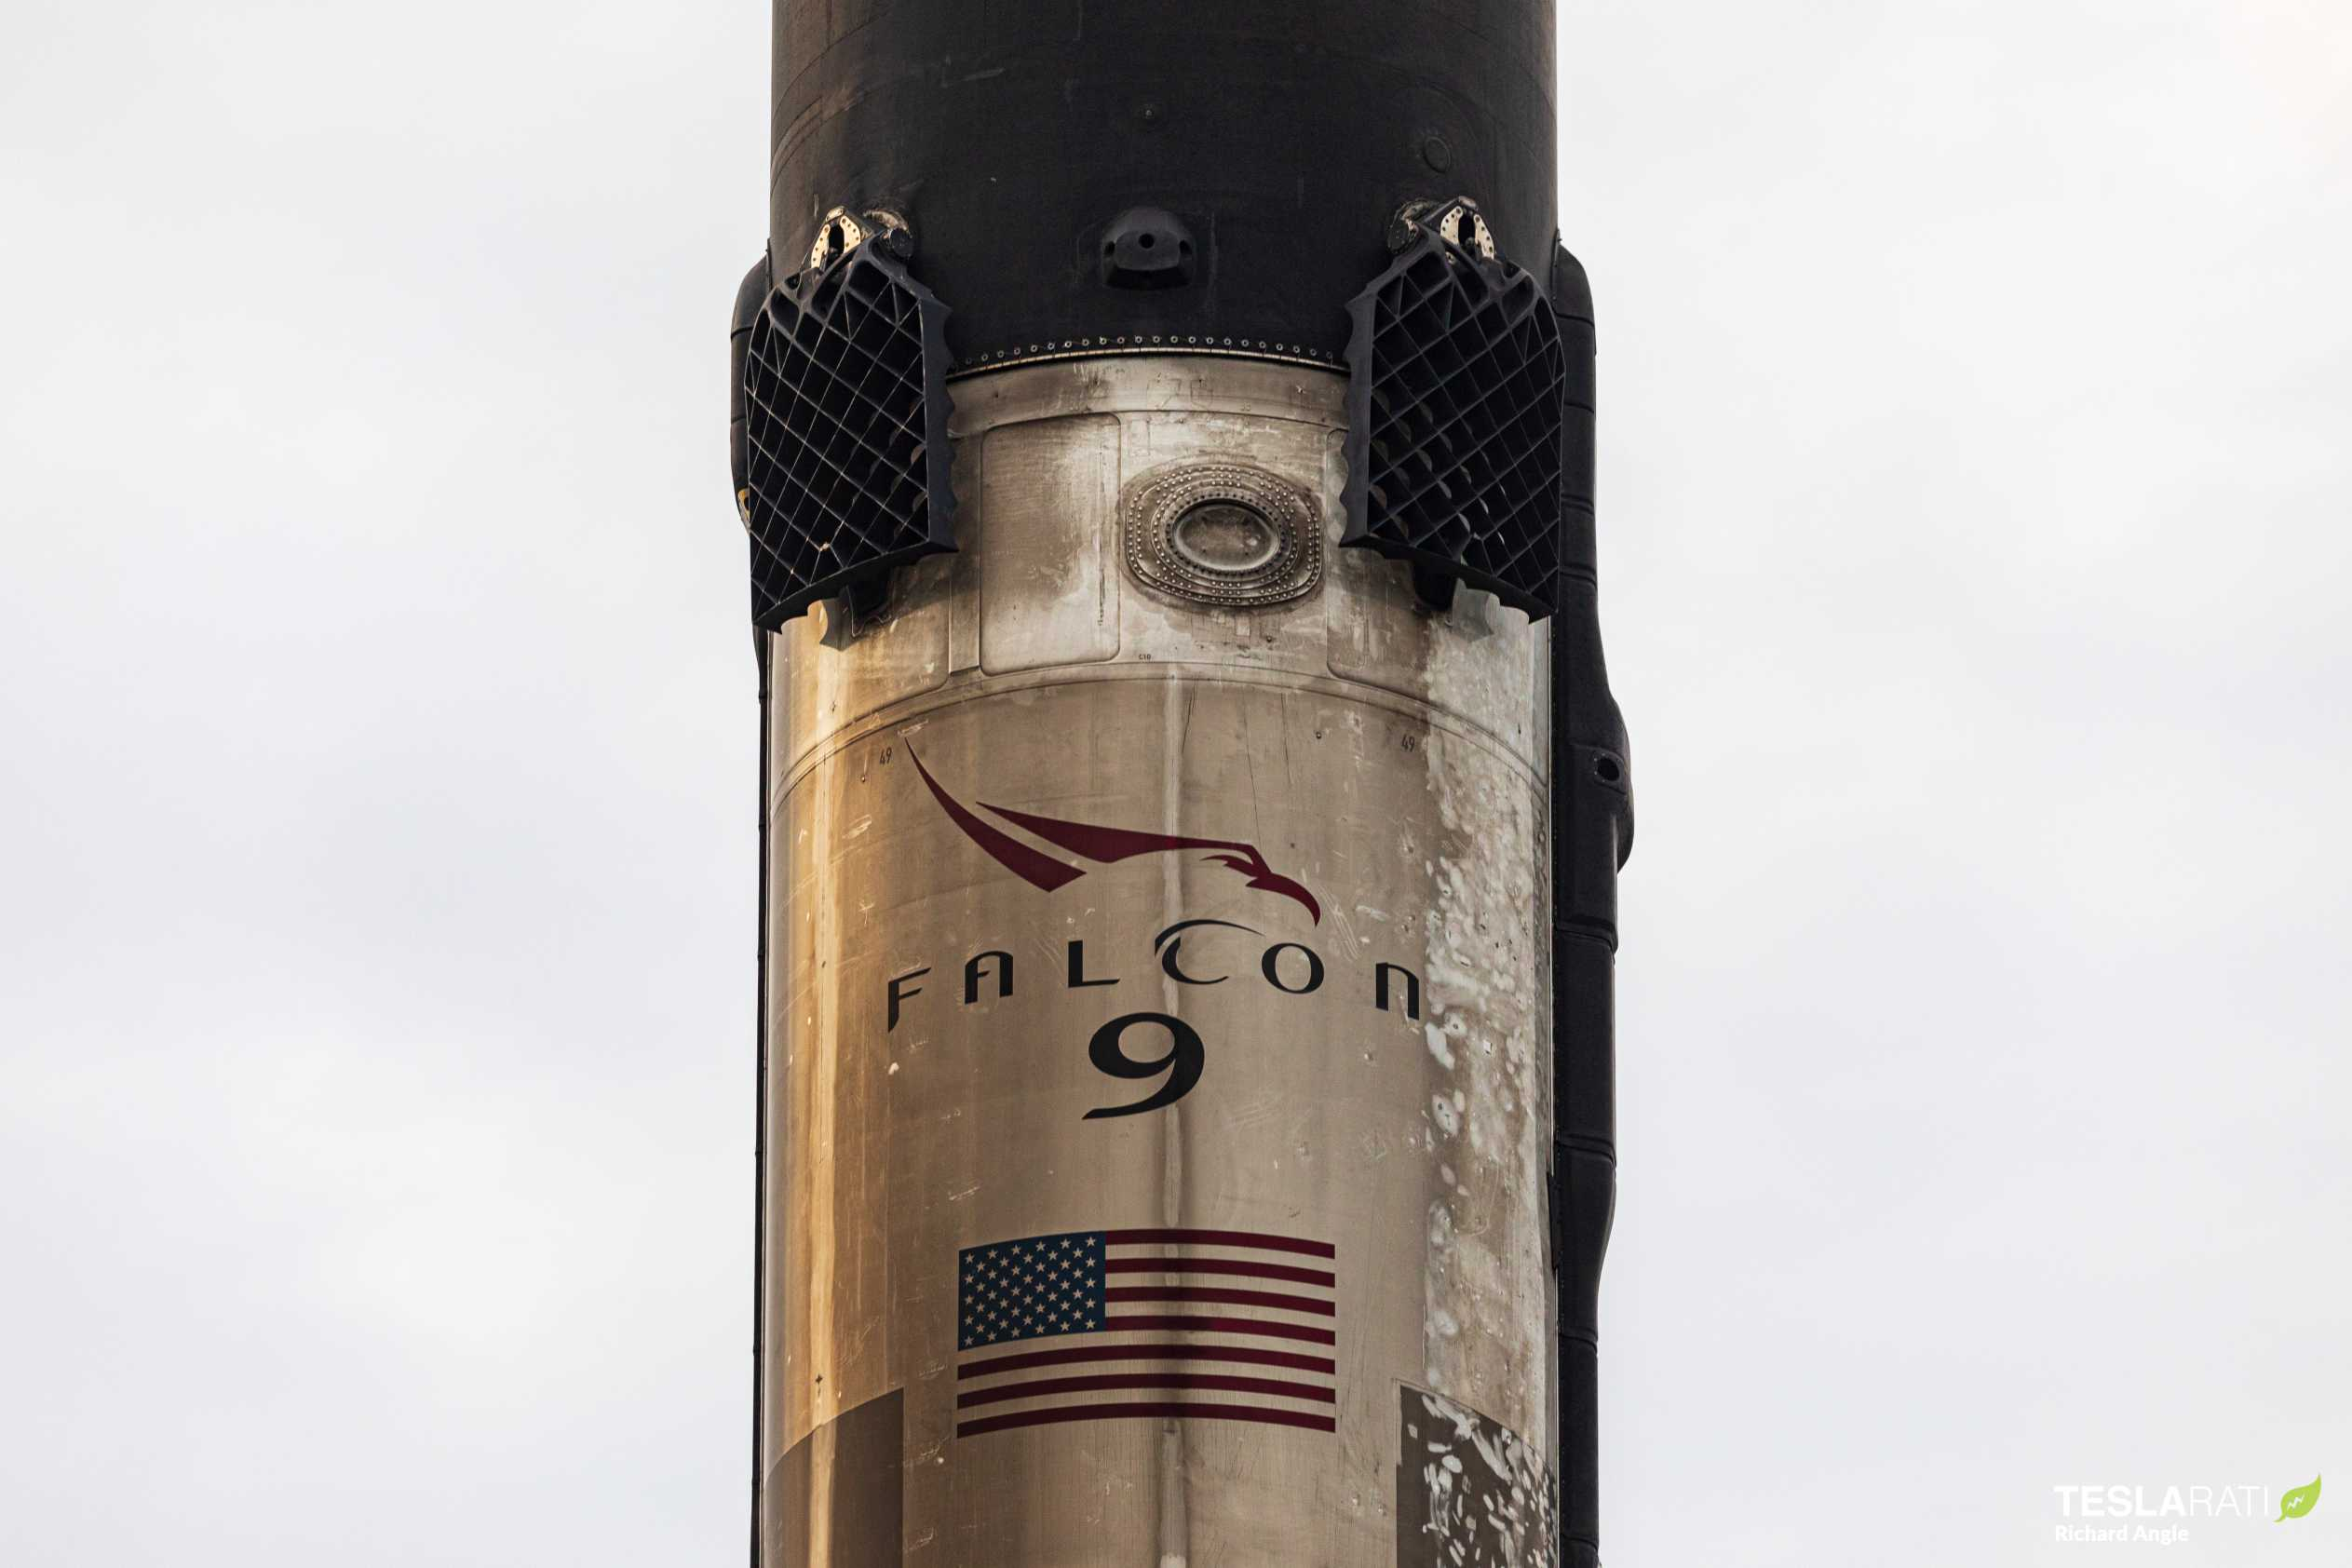 Starlink V1 L7 Falcon 9 B1049 JRTI return 060720 (Richard Angle) (1) (c)